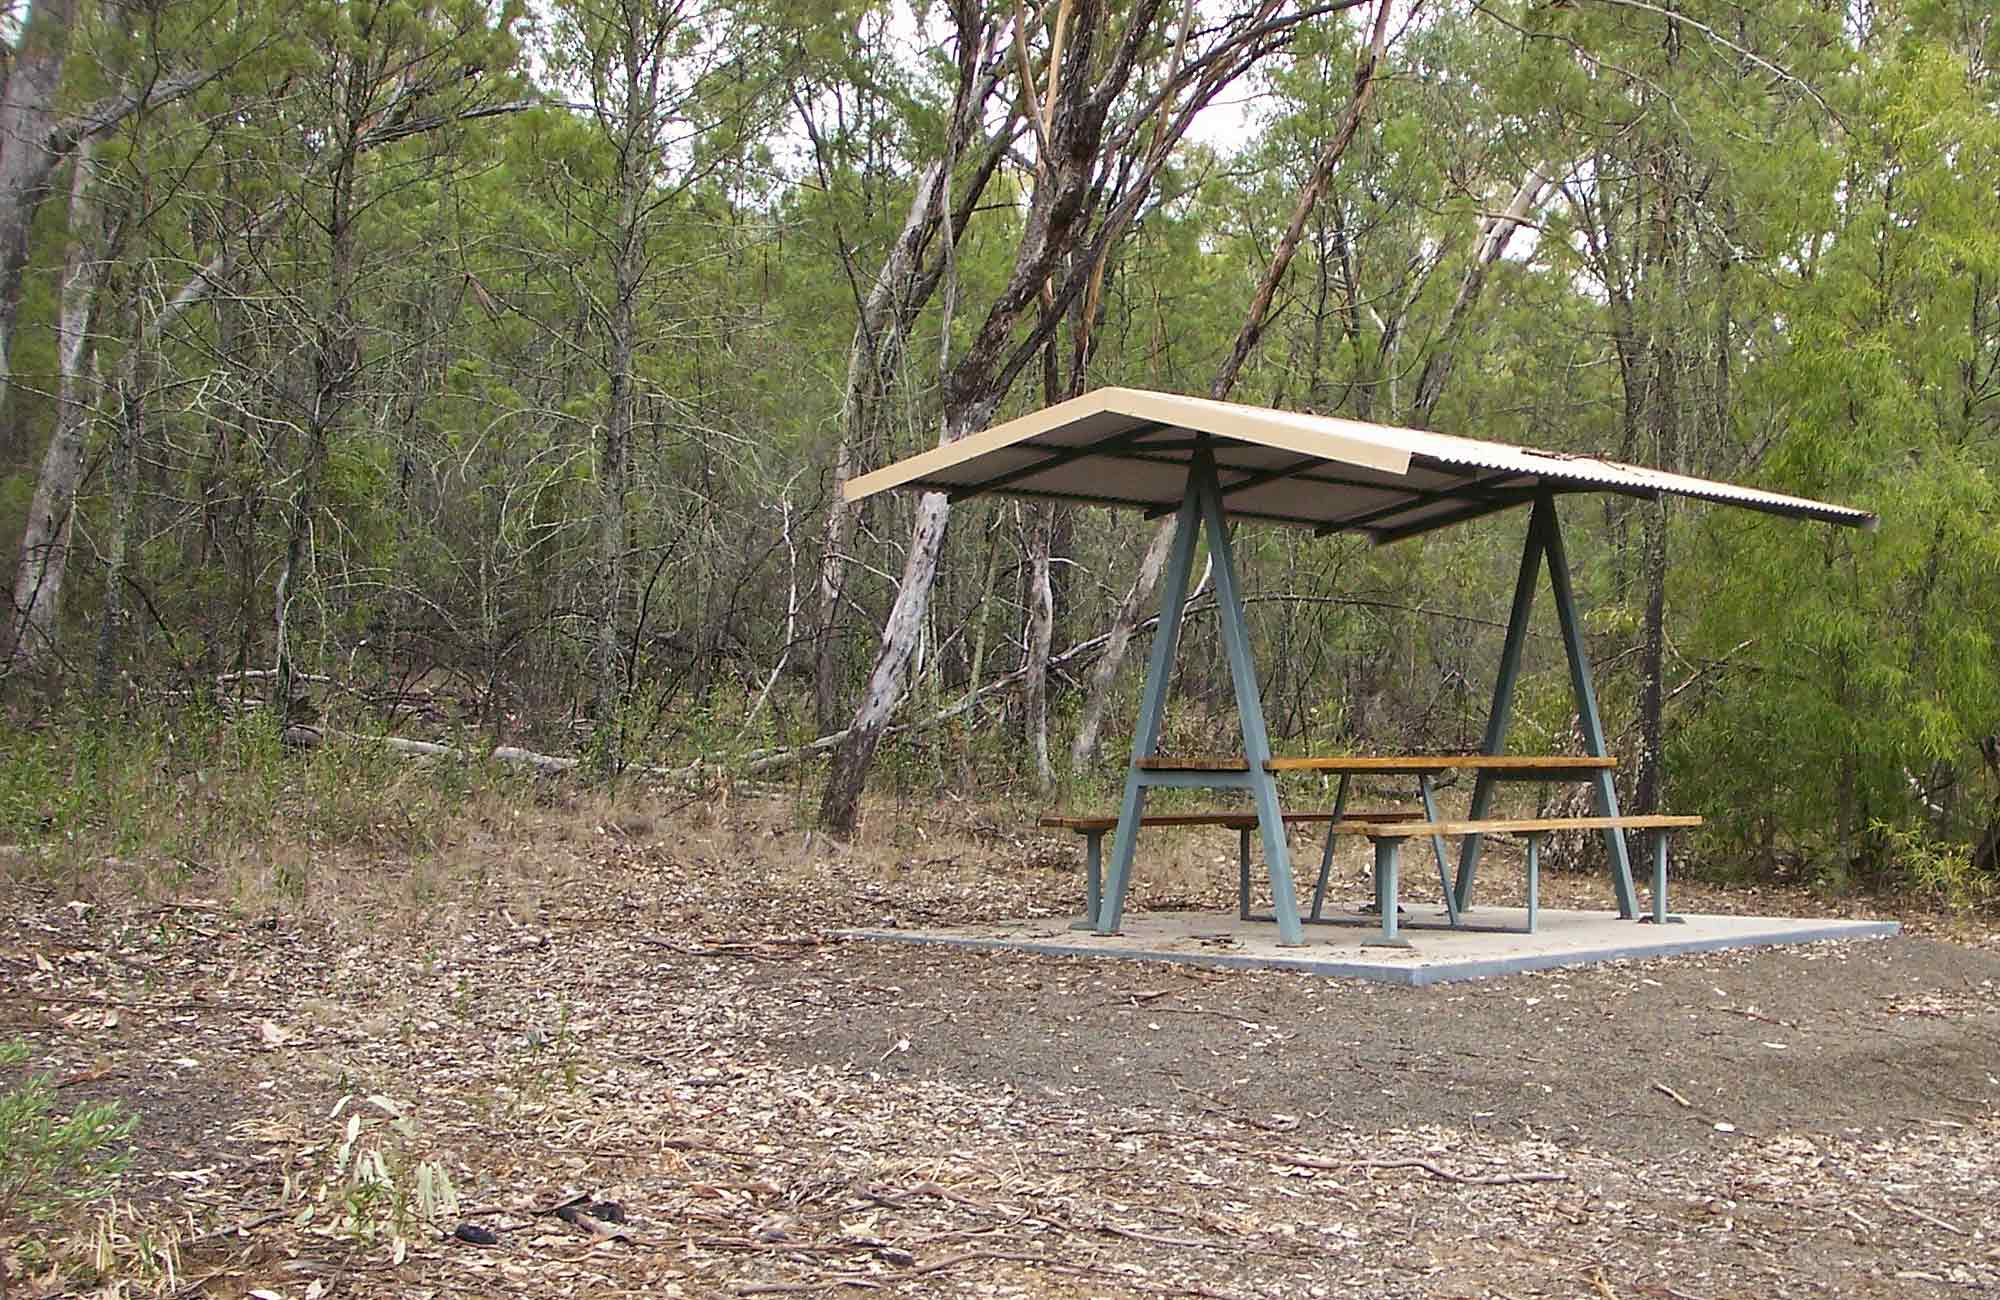 Waa Gorge picnic area, Mount Kaputar National Park. Photo: Daniel Trudgeon